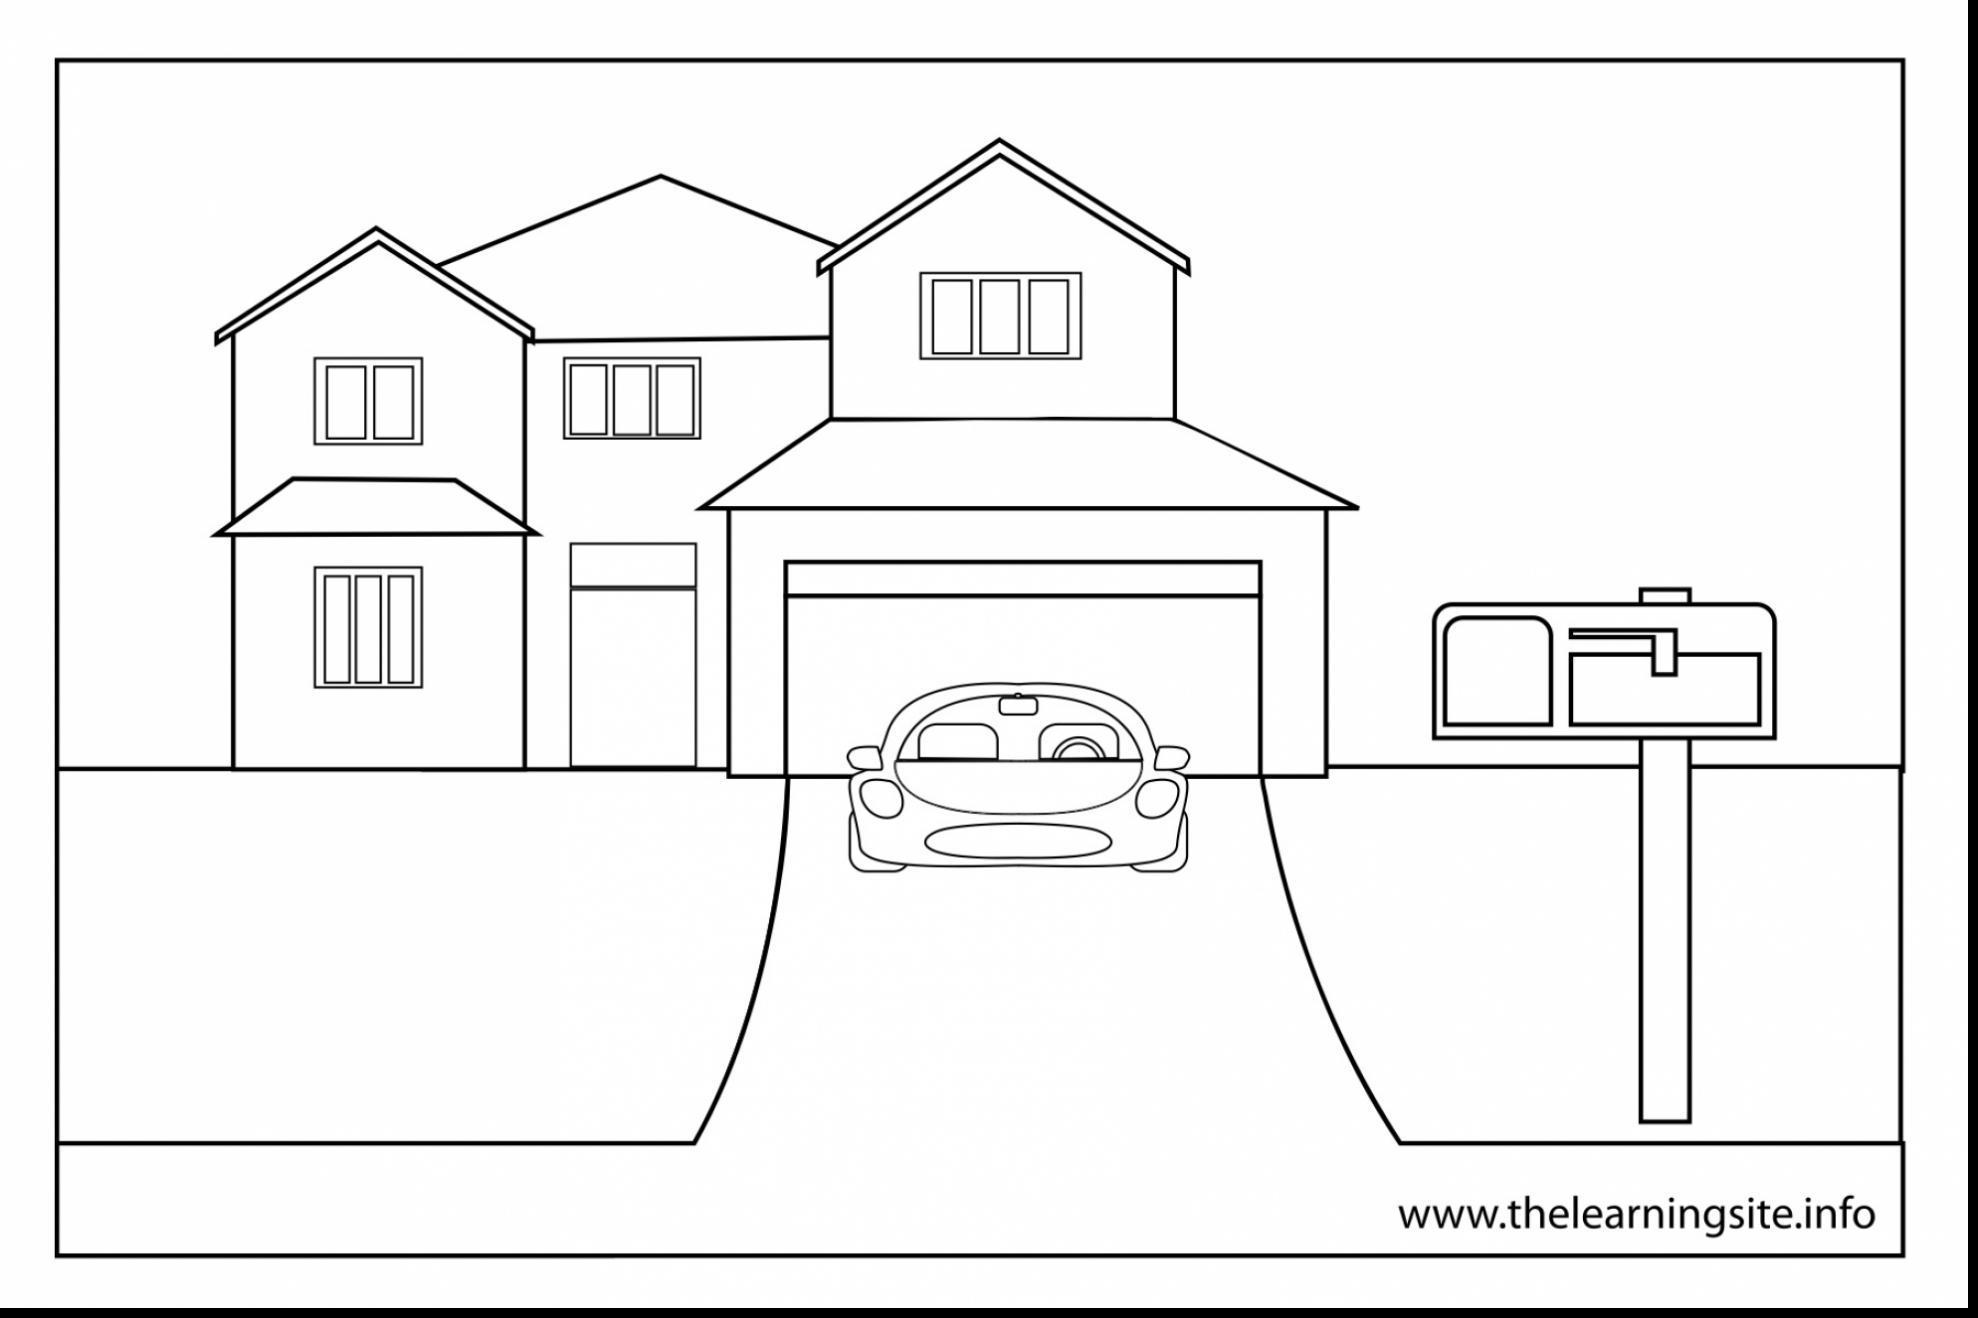 coloring outline of a house house outline drawing at getdrawings free download of coloring house a outline